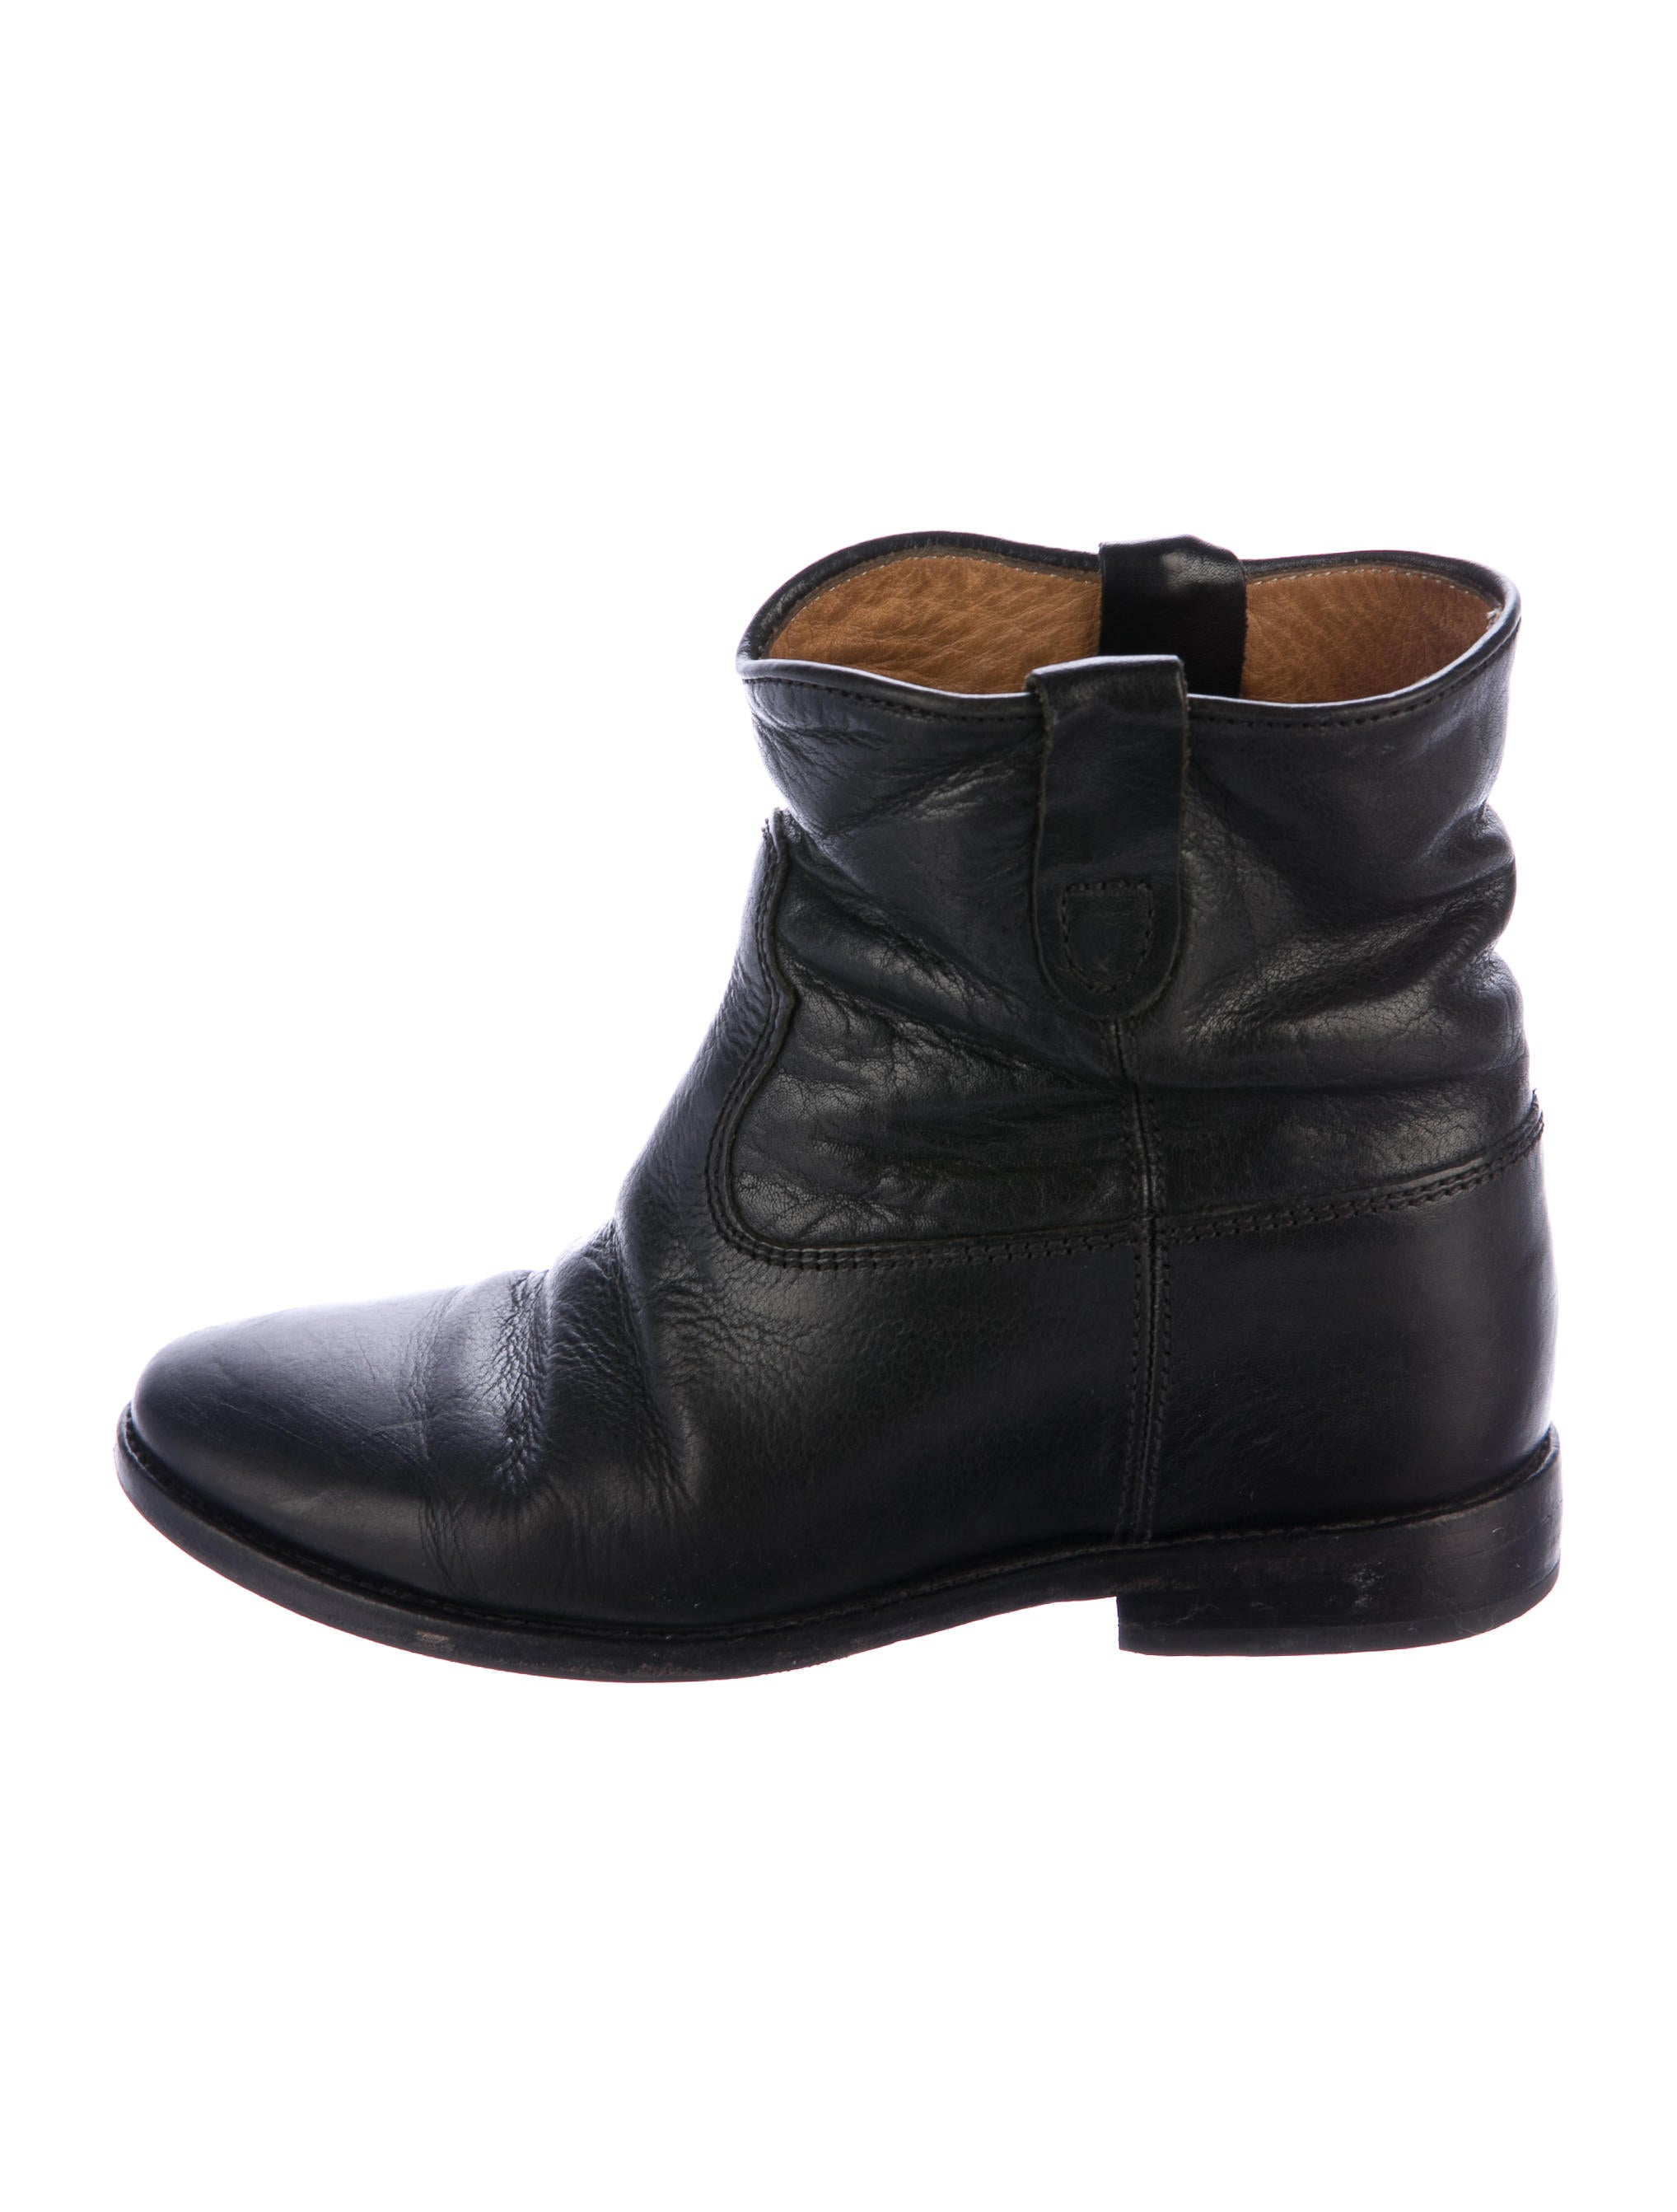 isabel marant leather round toe ankle boots shoes isa45920 the realreal. Black Bedroom Furniture Sets. Home Design Ideas